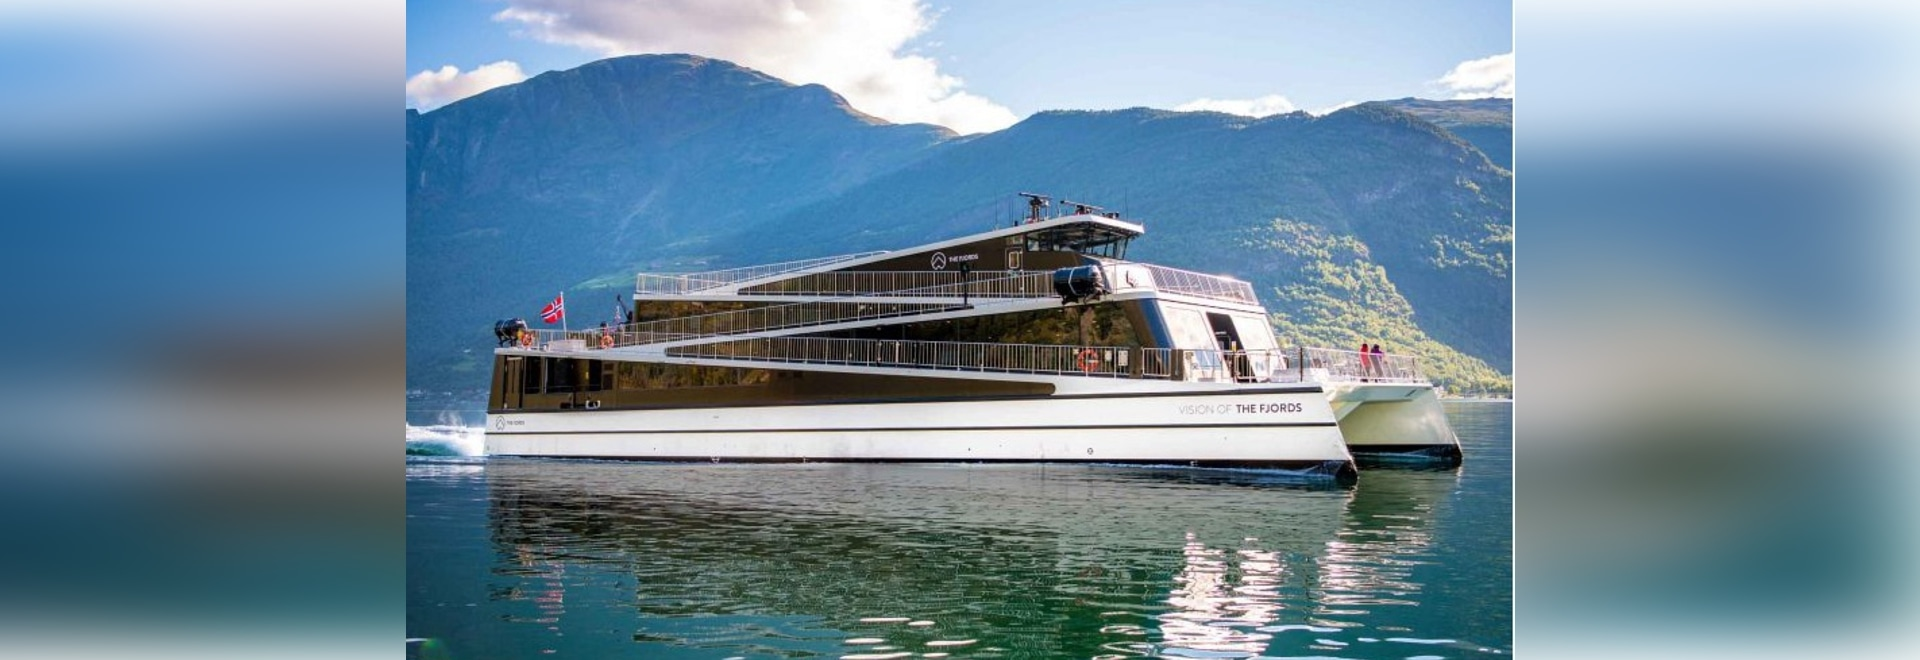 VISION OF THE FJORDS WINS SHIP OF THE YEAR 2016